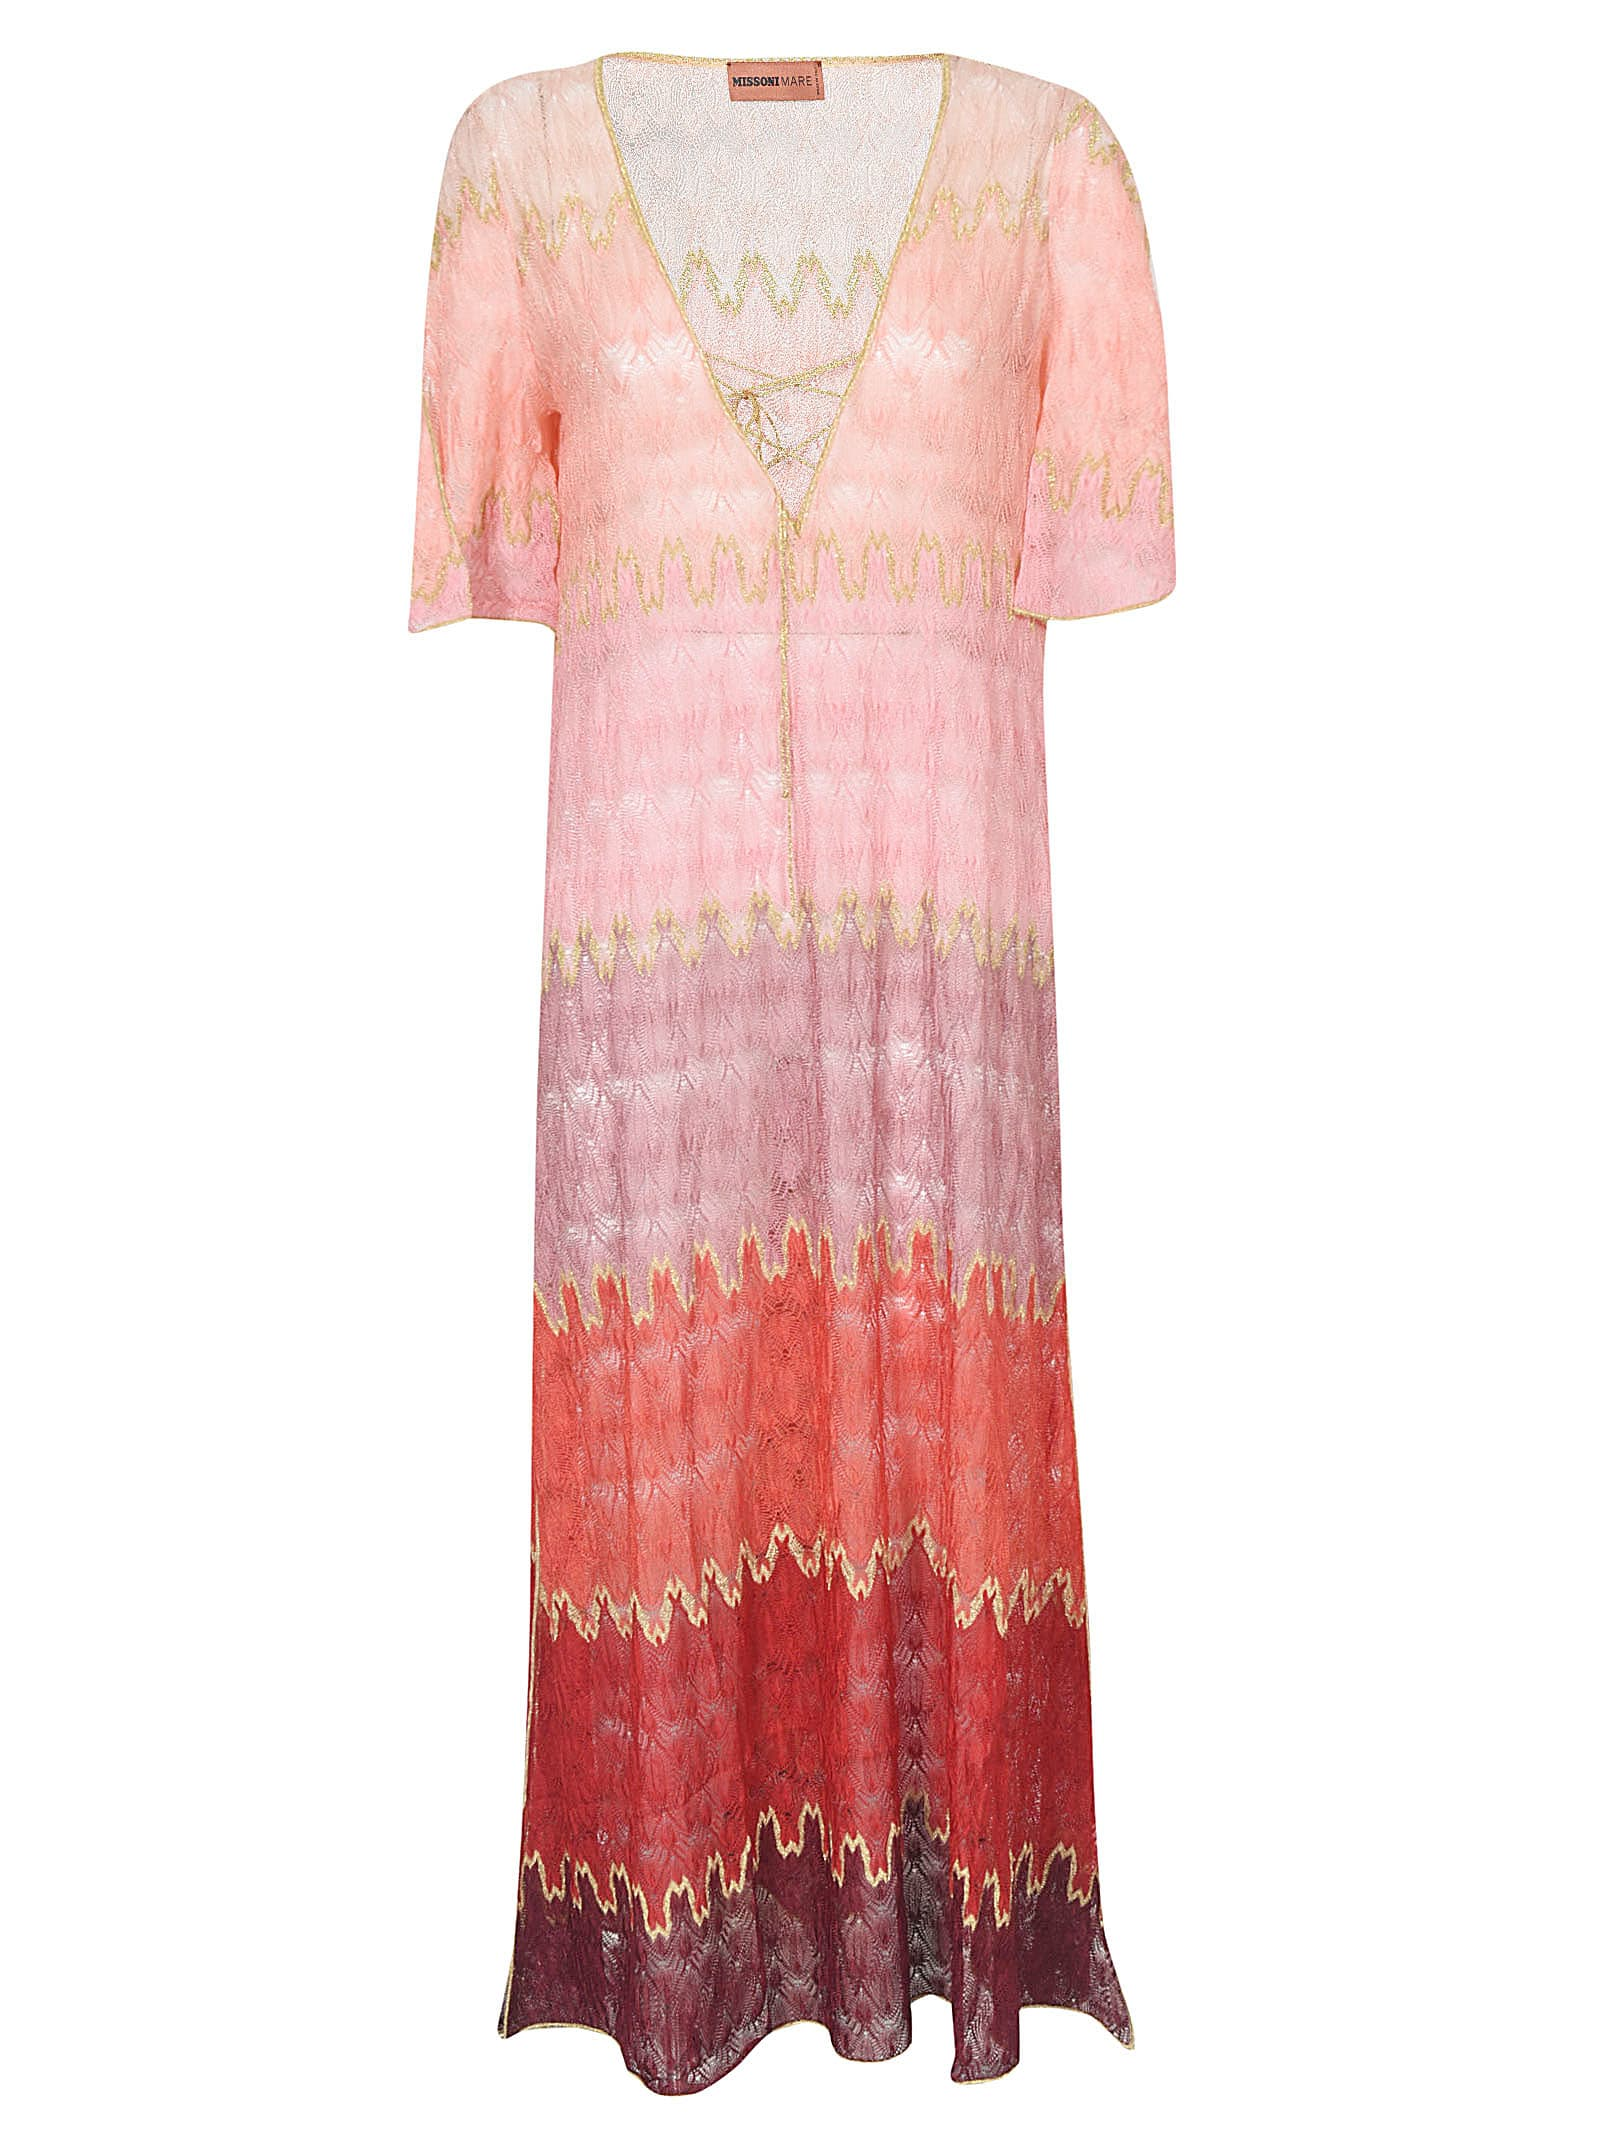 Buy Missoni Copricostume Short-sleeve Dress online, shop Missoni with free shipping